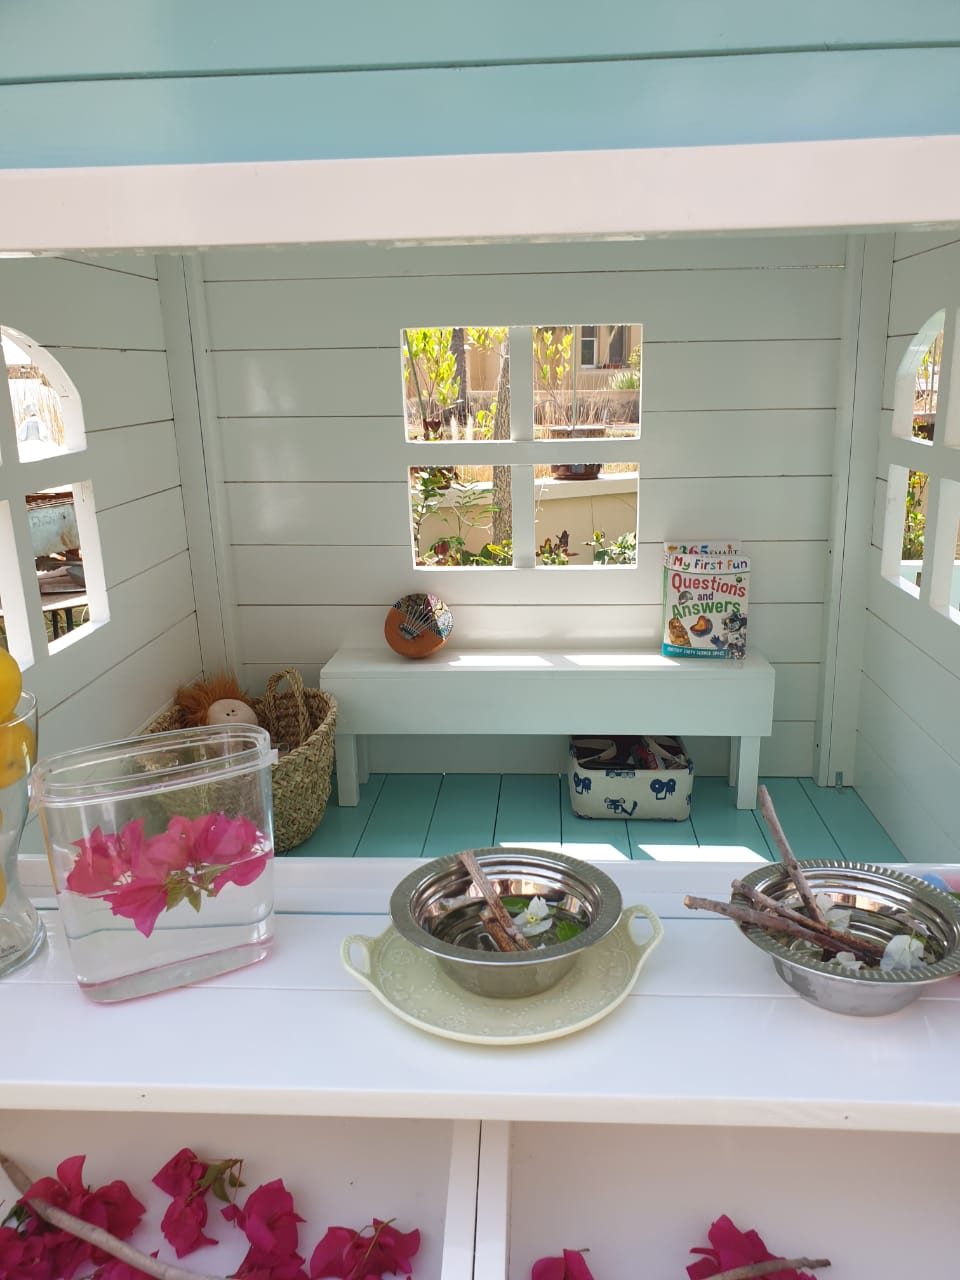 Gallery - click here to see more photos of our cubby houses